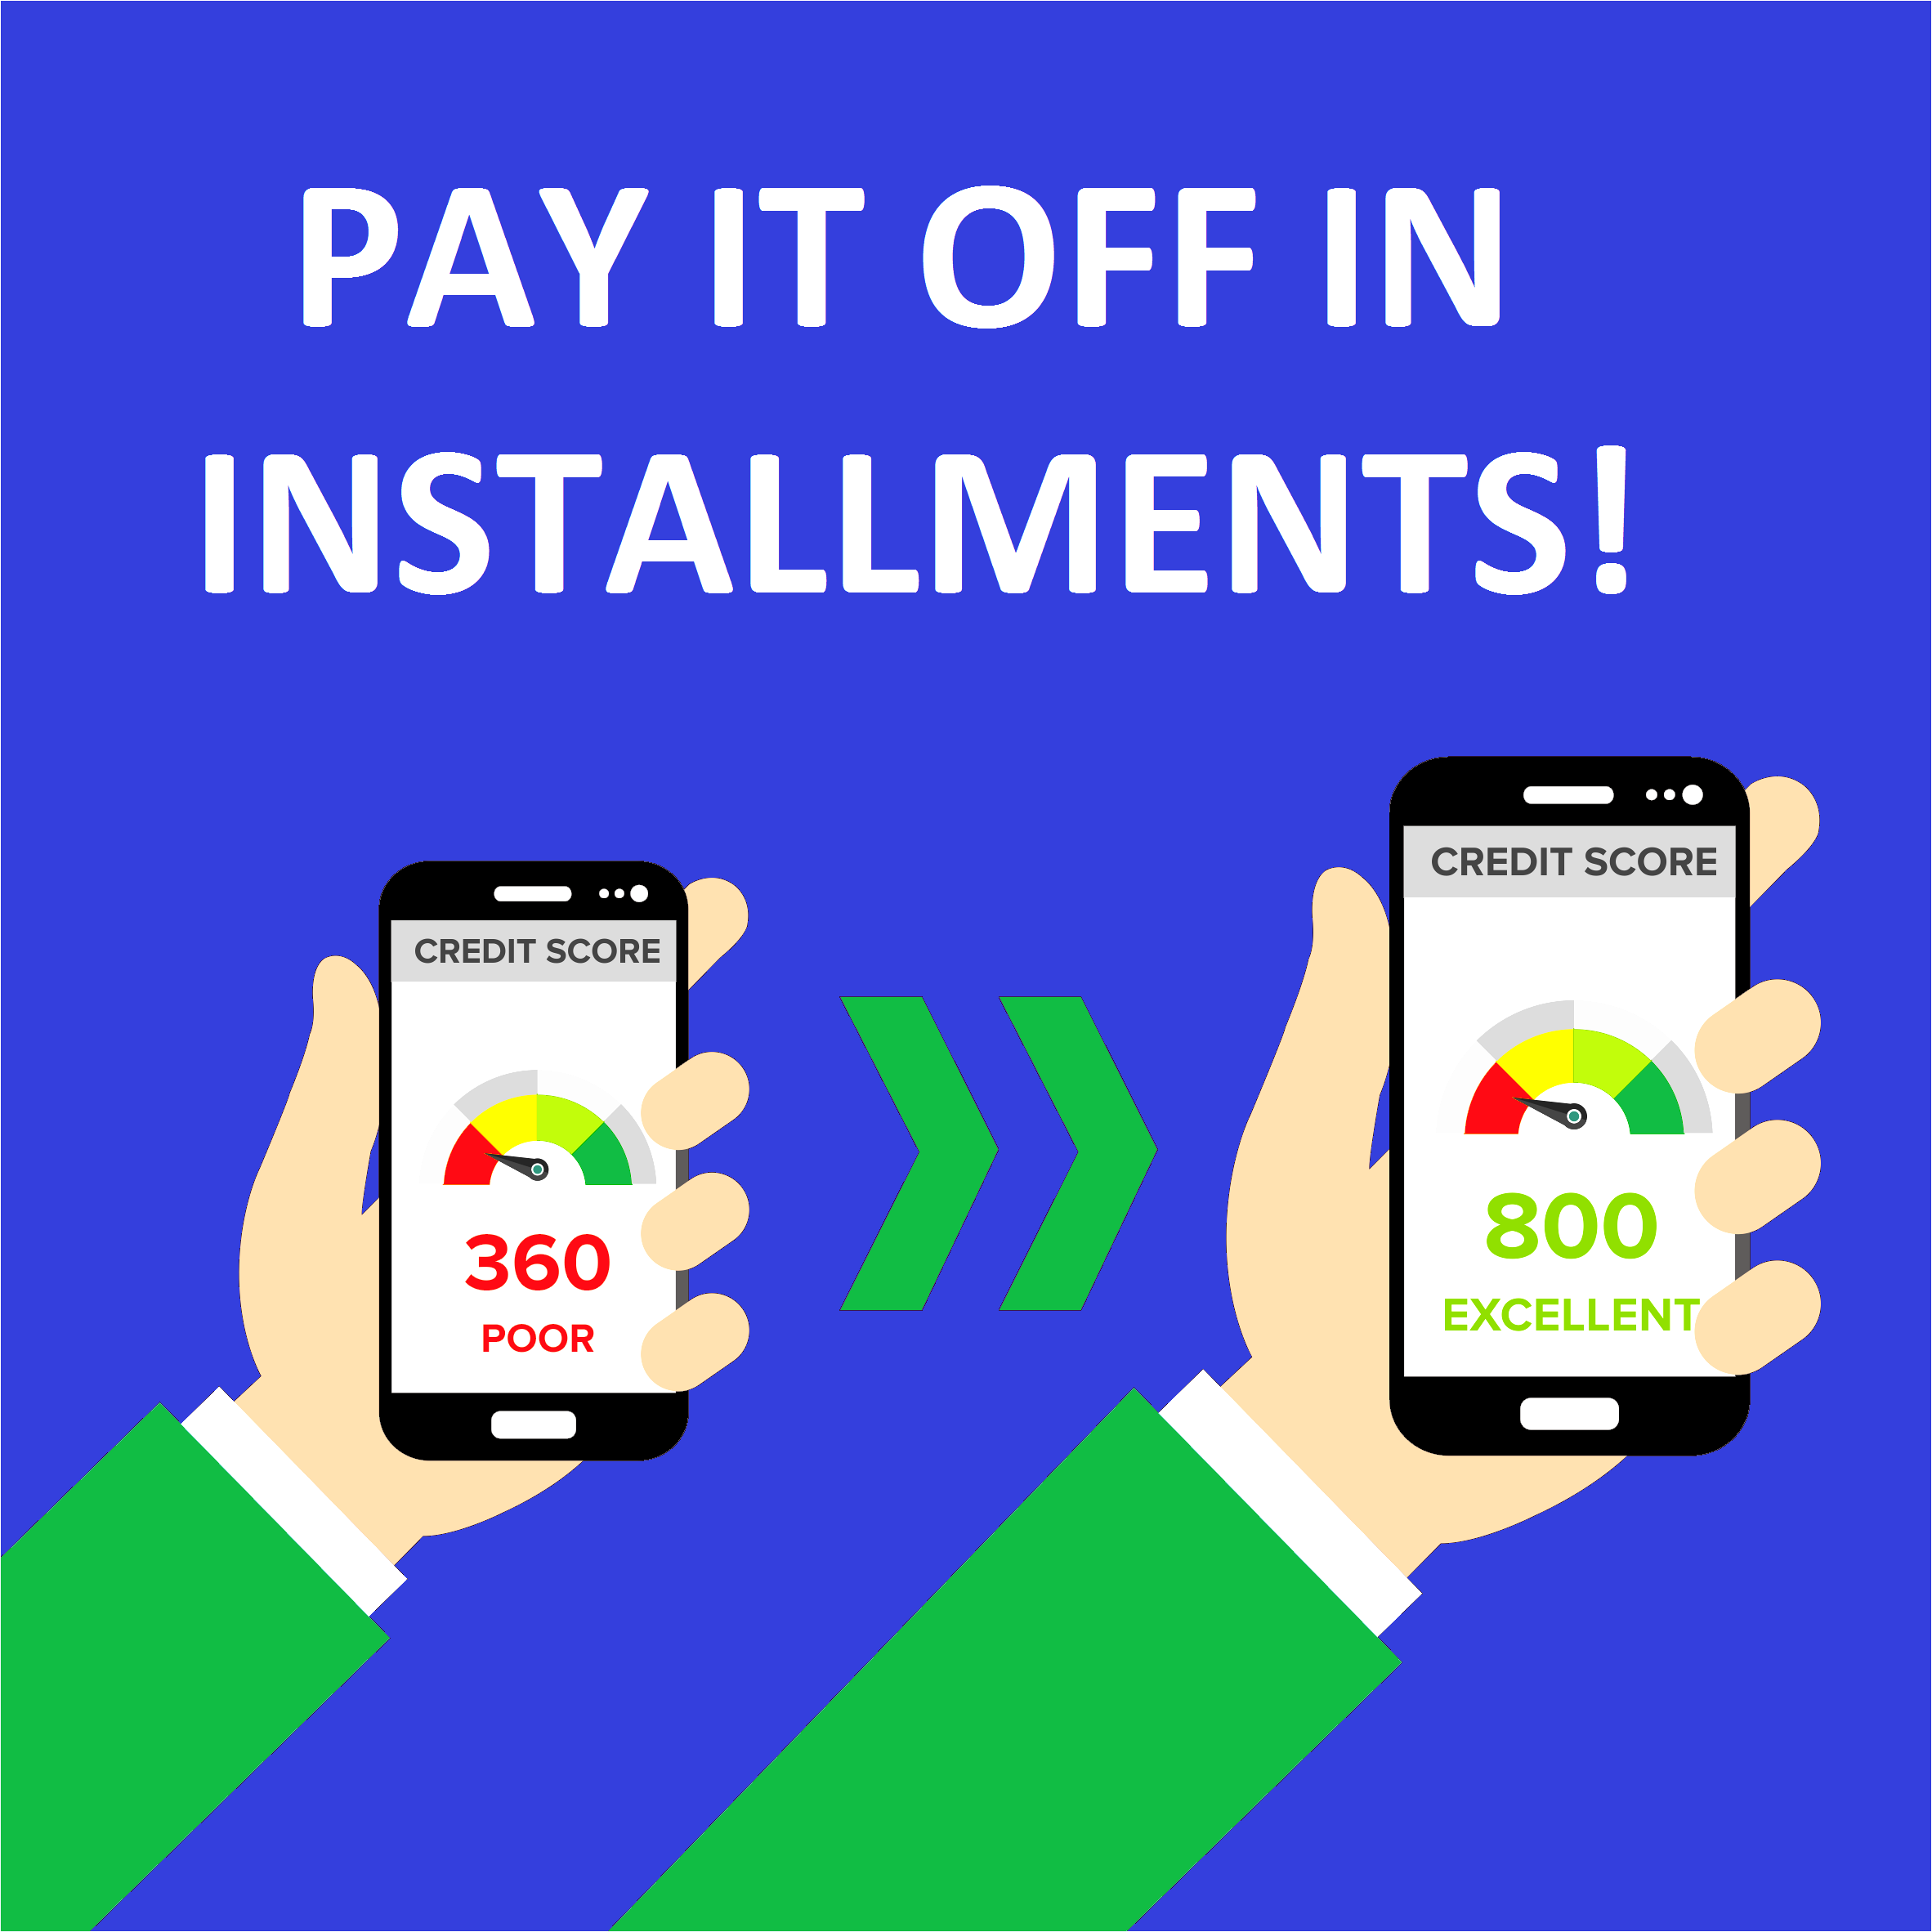 Pay It Off In Installments!